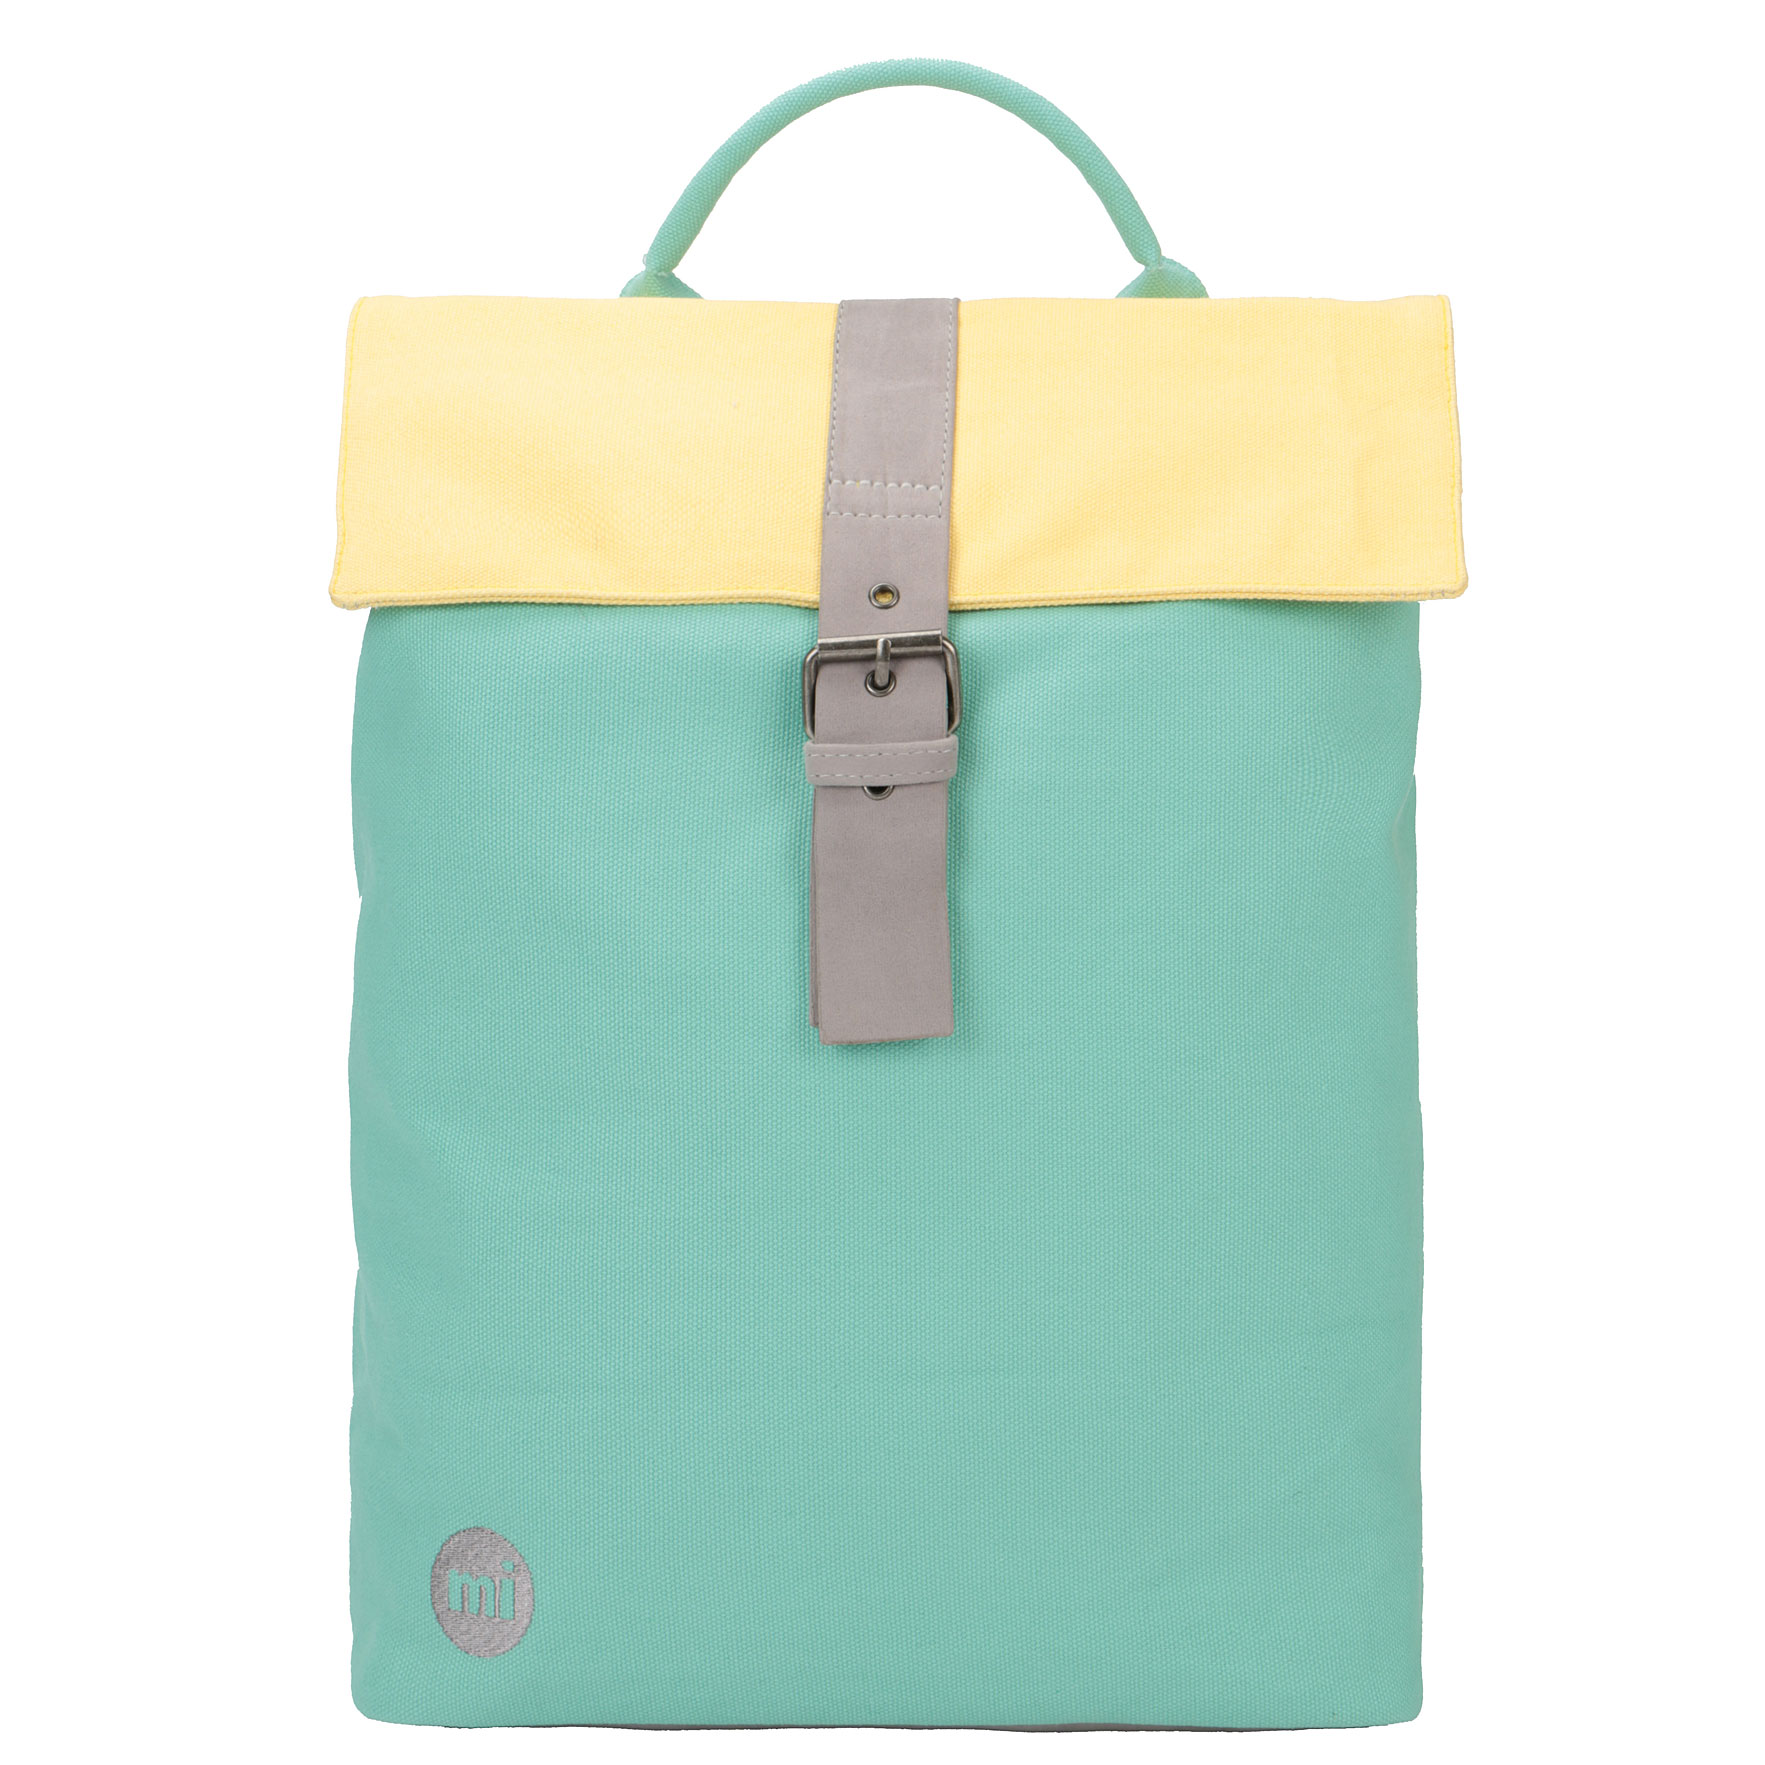 e3fad5b2556 Mi-Pac Day Pack Contrast Canvas Backpack Mint/Pastel Lemon - Standtall.se